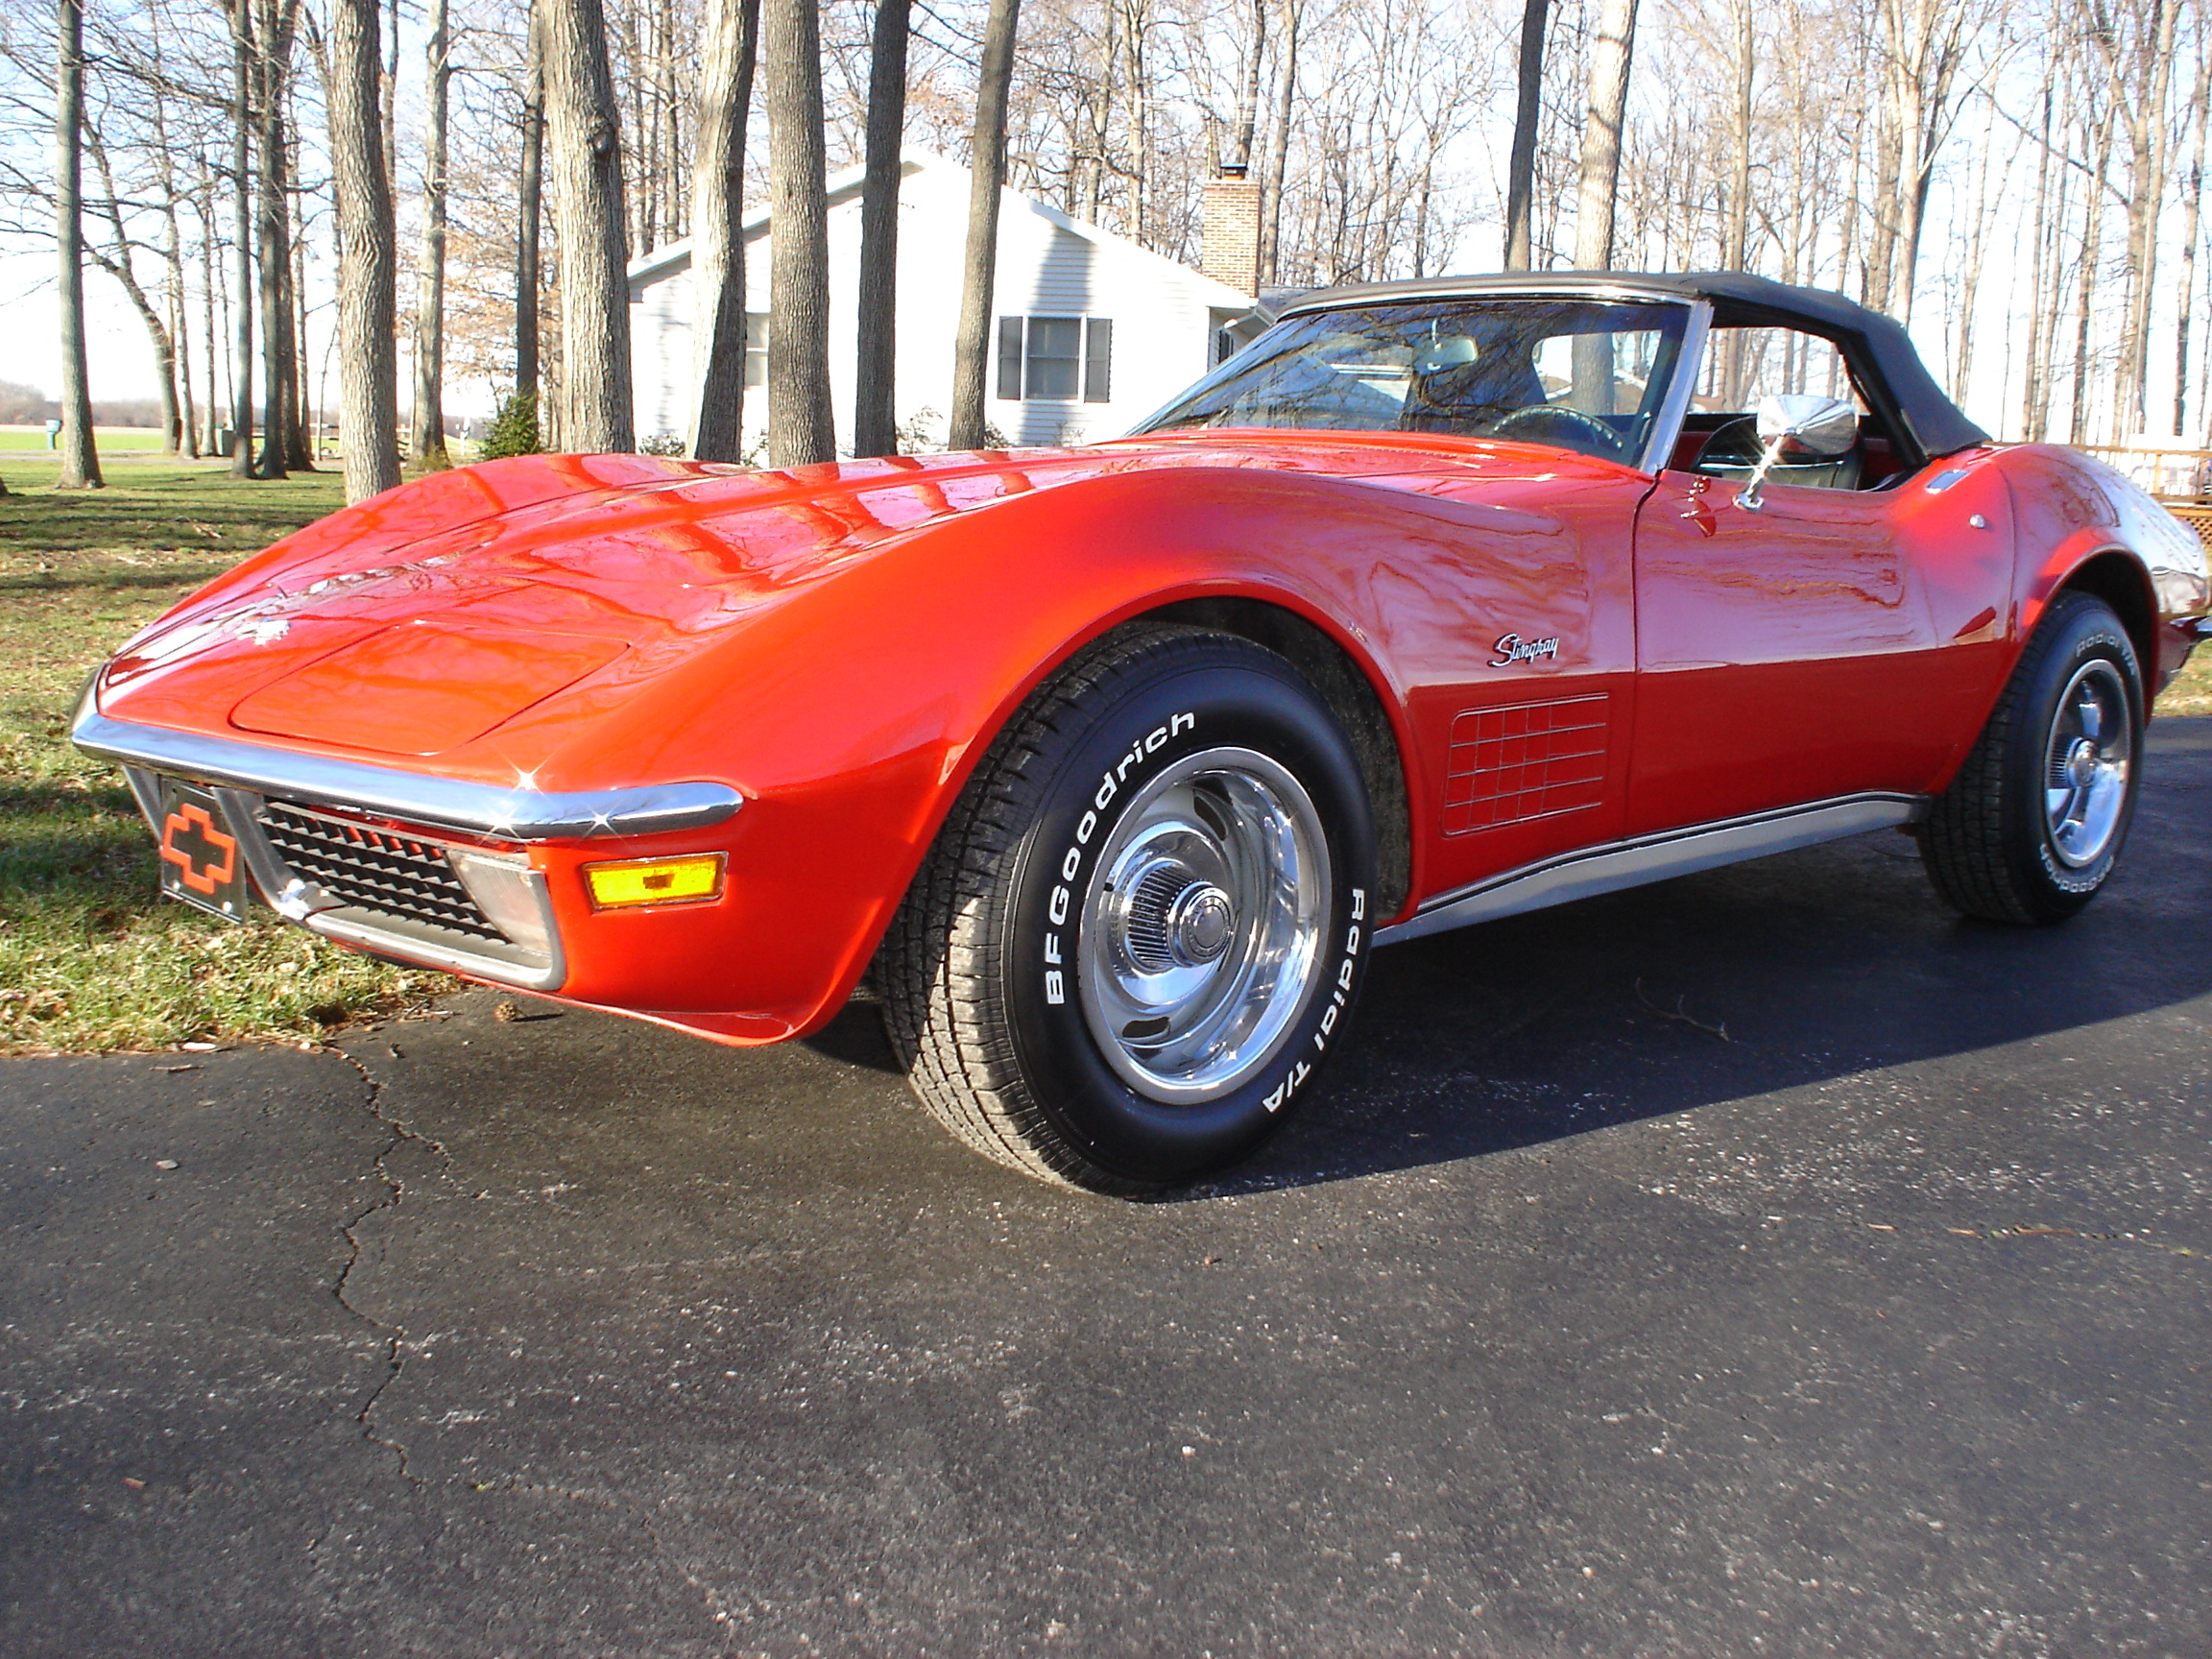 71 Corvette Jjv Customs